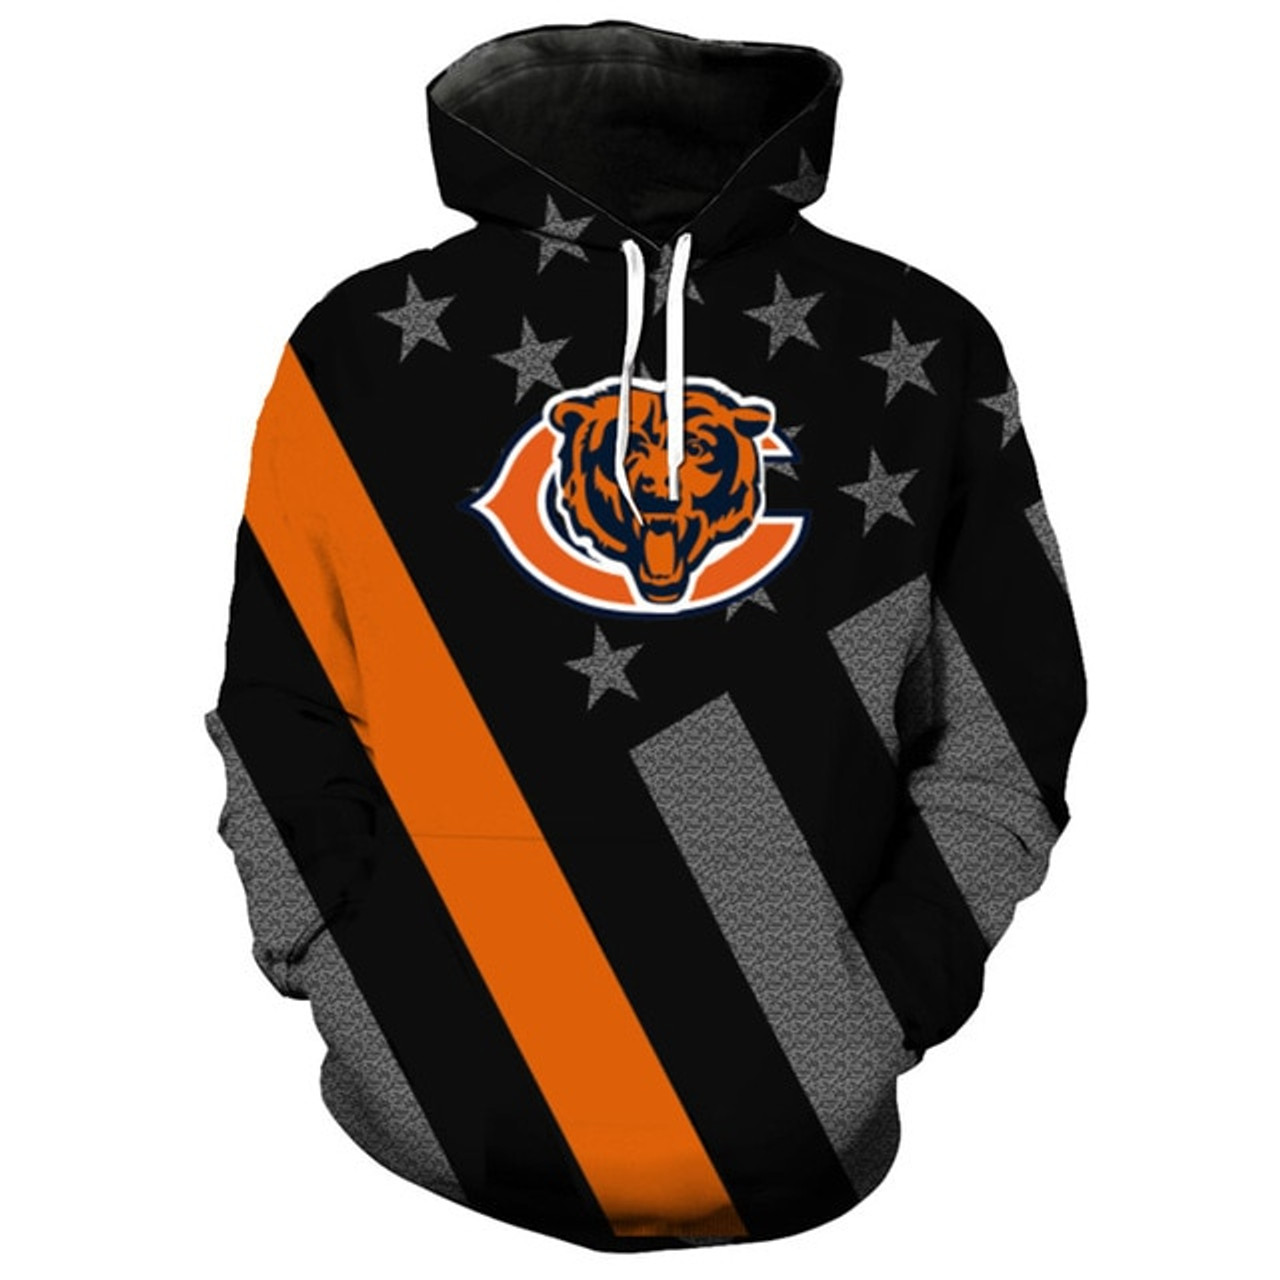 timeless design c2b8d 1d234 **(OFFICIAL-N.F.L.CHICAGO-BEARS-TRENDY-PATRIOTIC-PULLOVER-TEAM-HOODIES/NICE-CUSTOM-3D-EFFECT-GRAPHIC-PRINTED-DOUBLE-SIDED-ALL-OVER-OFFICIAL-BEARS-LOGO...